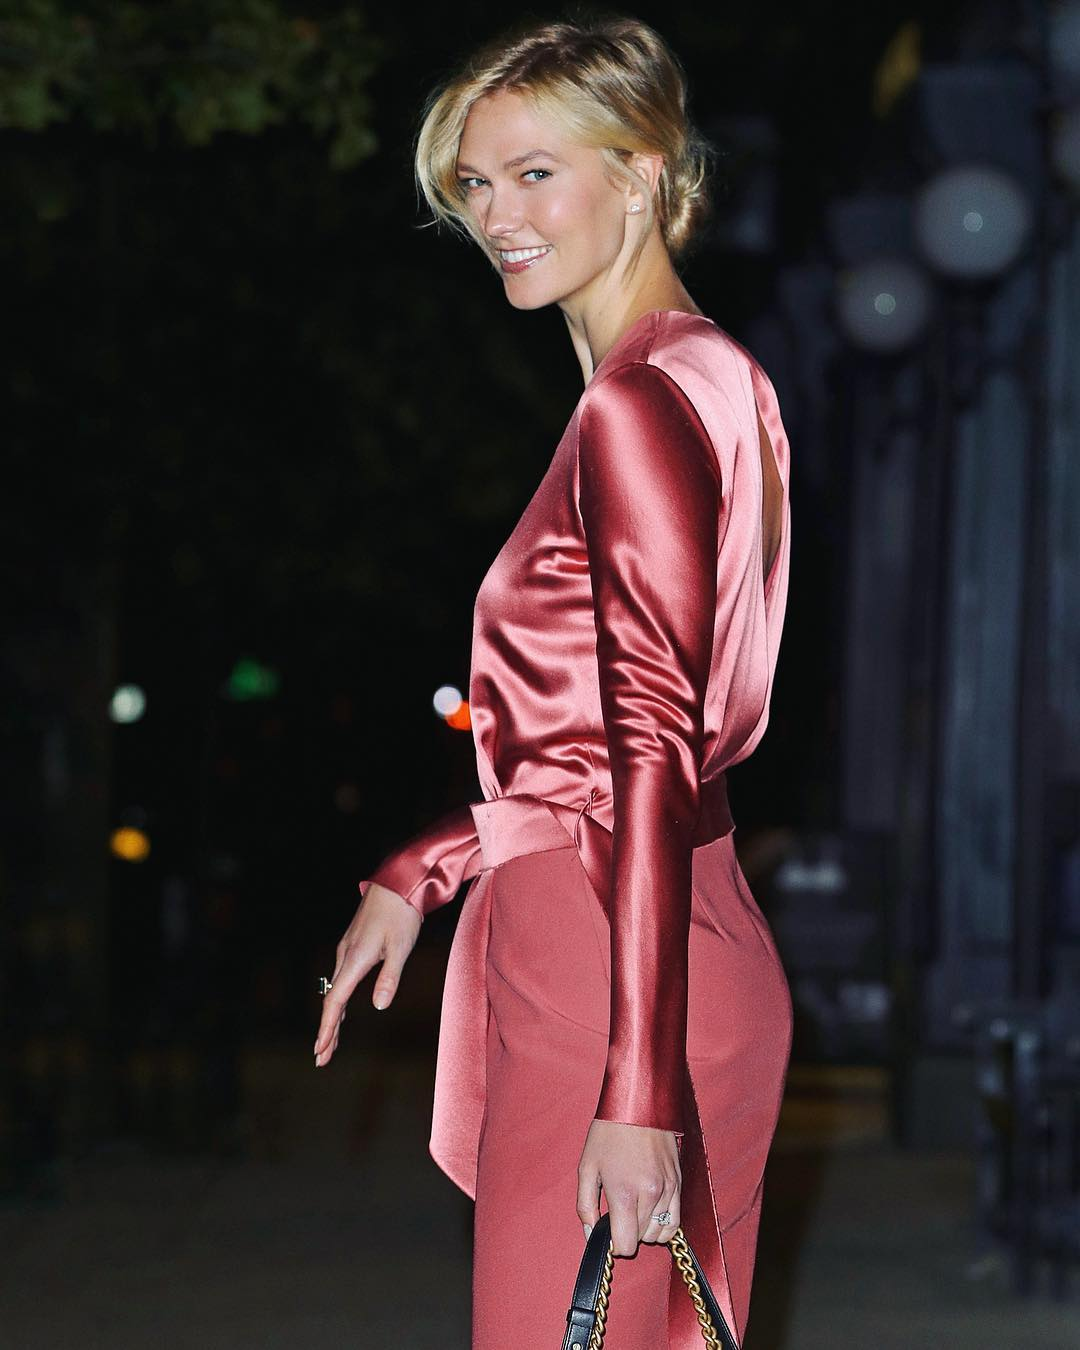 DION LEE Sherbet Pink Long Sleeve Dress On Karlie Kloss 2019